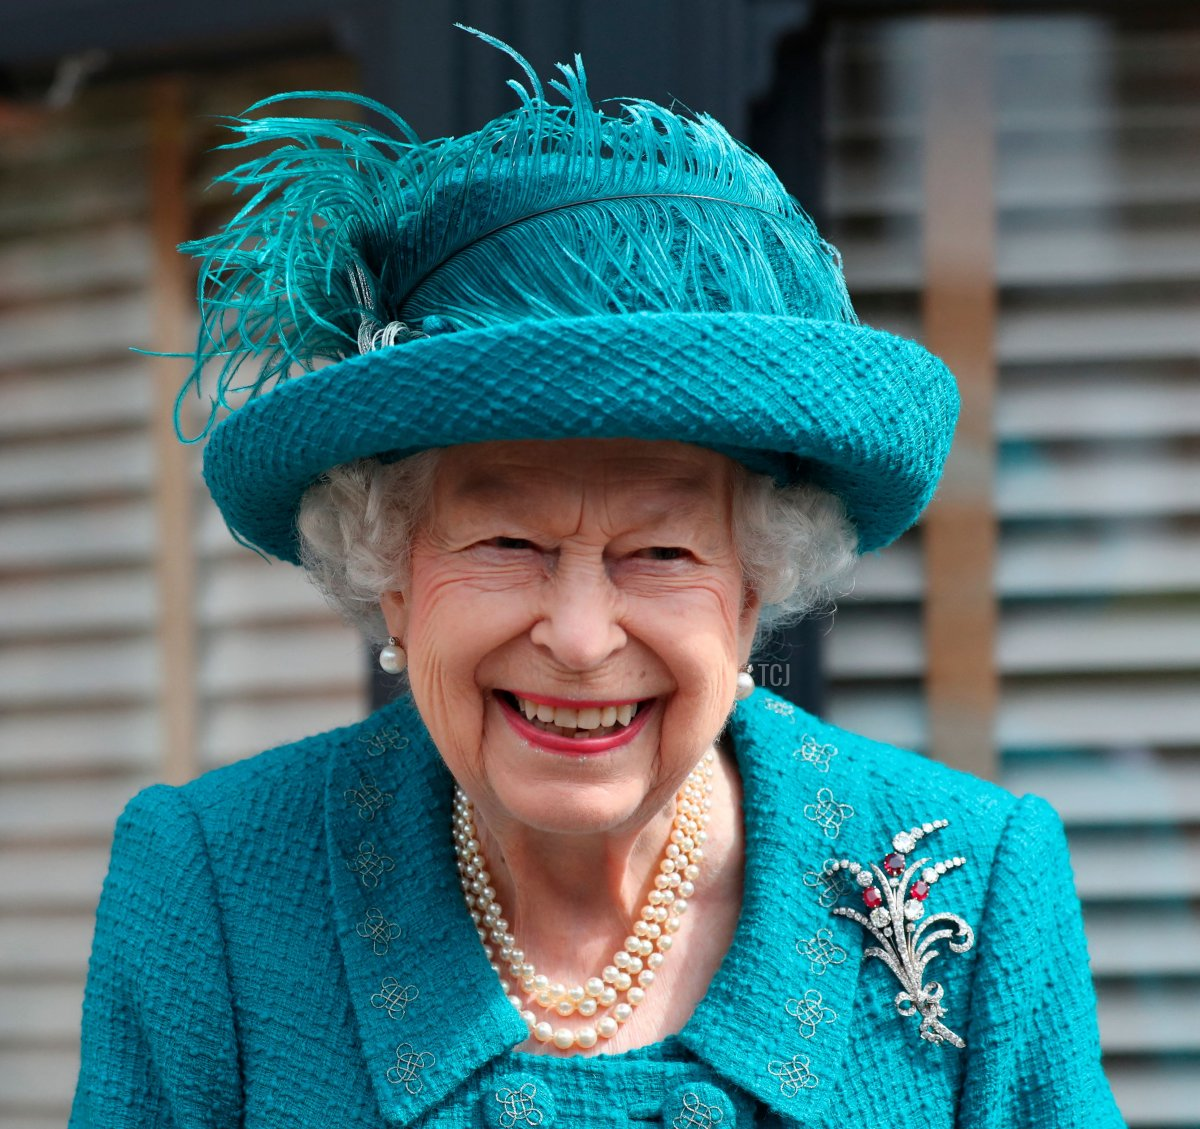 Britain's Queen Elizabeth II visits the set of the long running television series Coronation Street in Manchester, northwest England on July 8, 2021